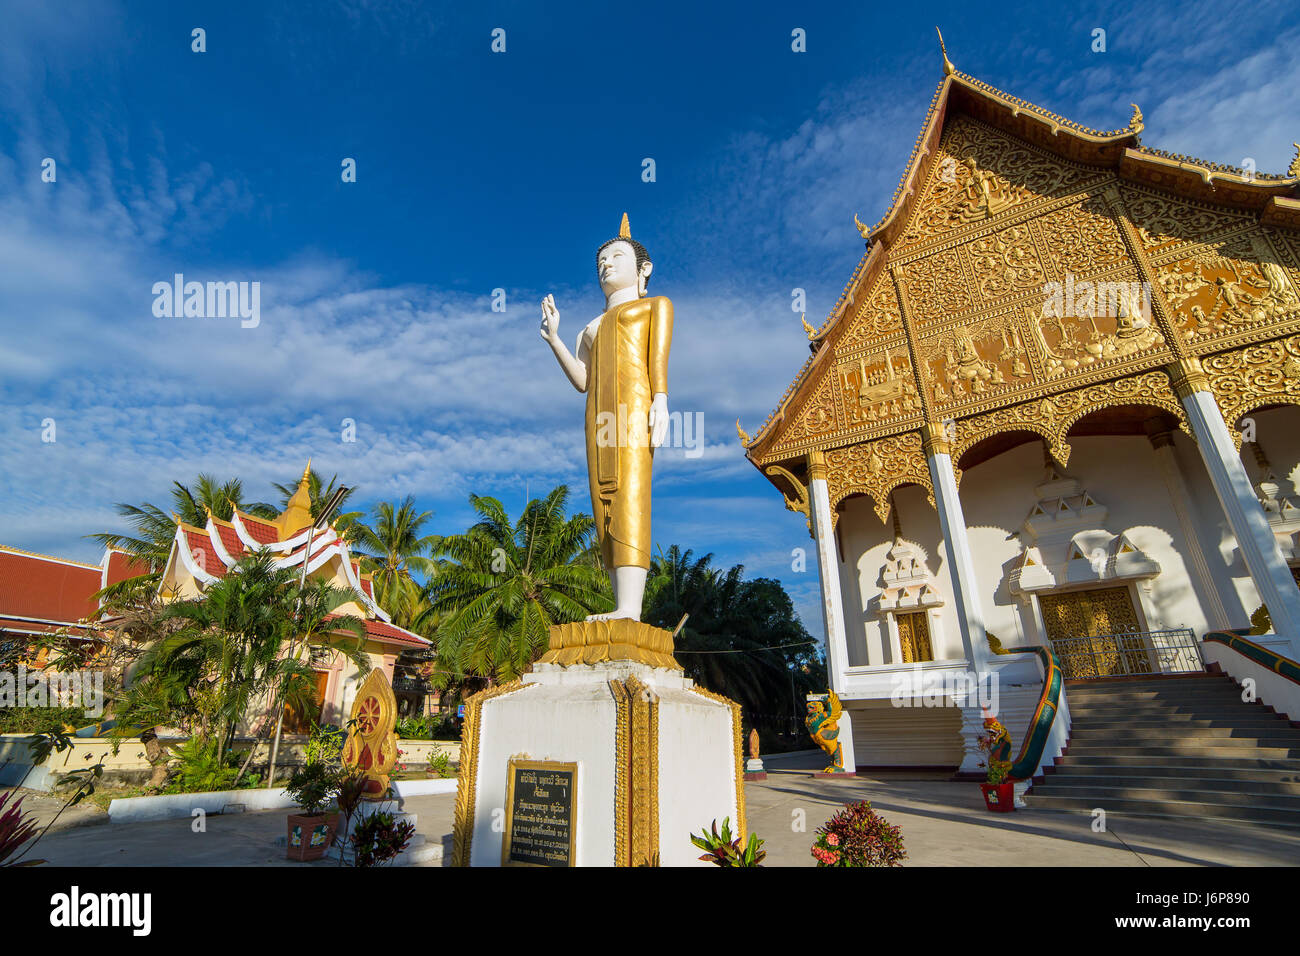 Wat Pha That Luang, Vientiane, Laos. - Stock Image